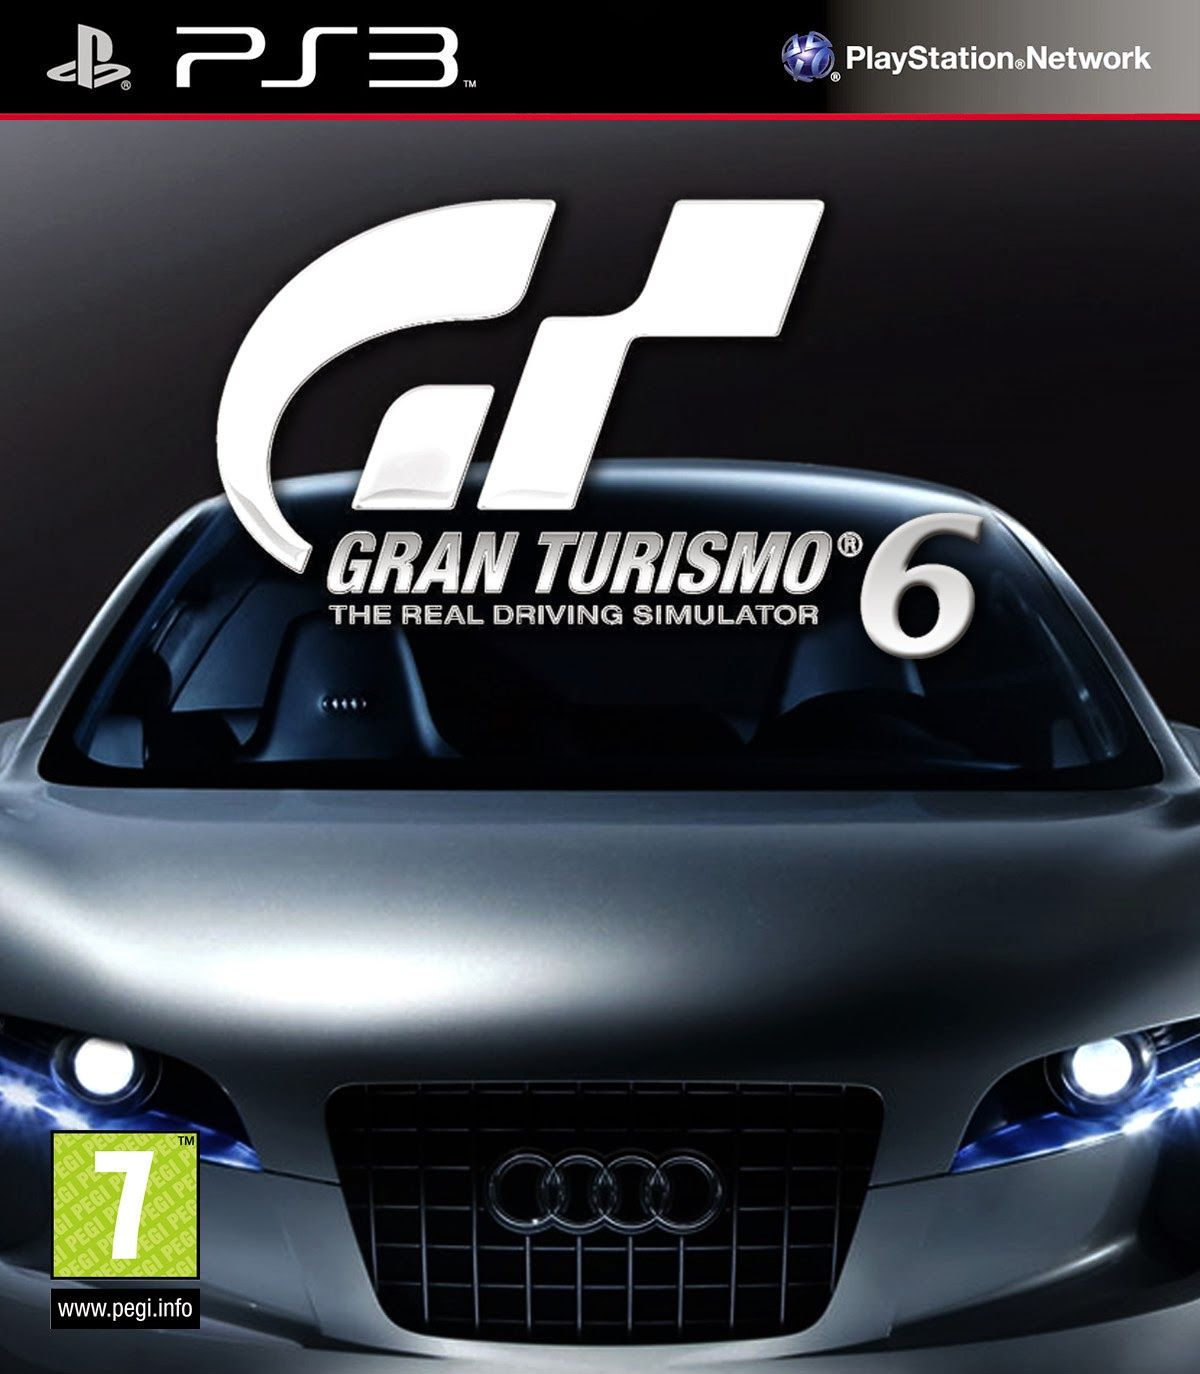 gran turismo 6 ps3 game download dreamtechland awesome. Black Bedroom Furniture Sets. Home Design Ideas